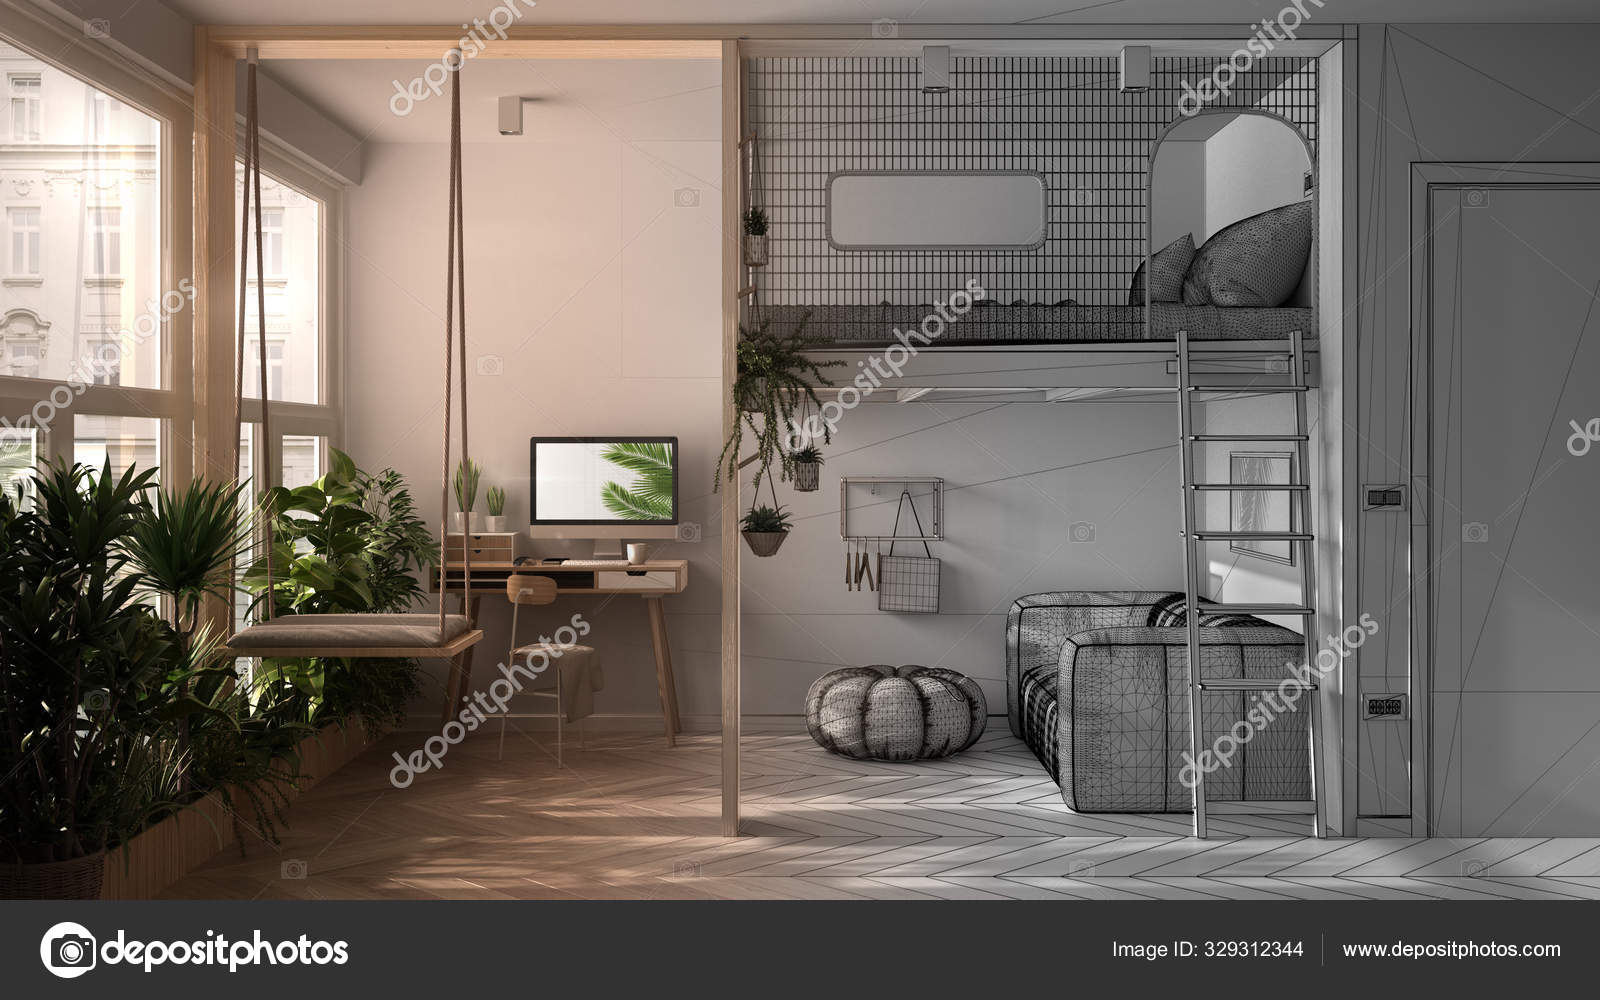 Architect Interior Designer Concept Unfinished Project That Becomes Real Minimalist Studio Apartment With Loft Bunk Bed Living Room Home Workplace Windows With Potted Plants Stock Photo C Archiviz 329312344